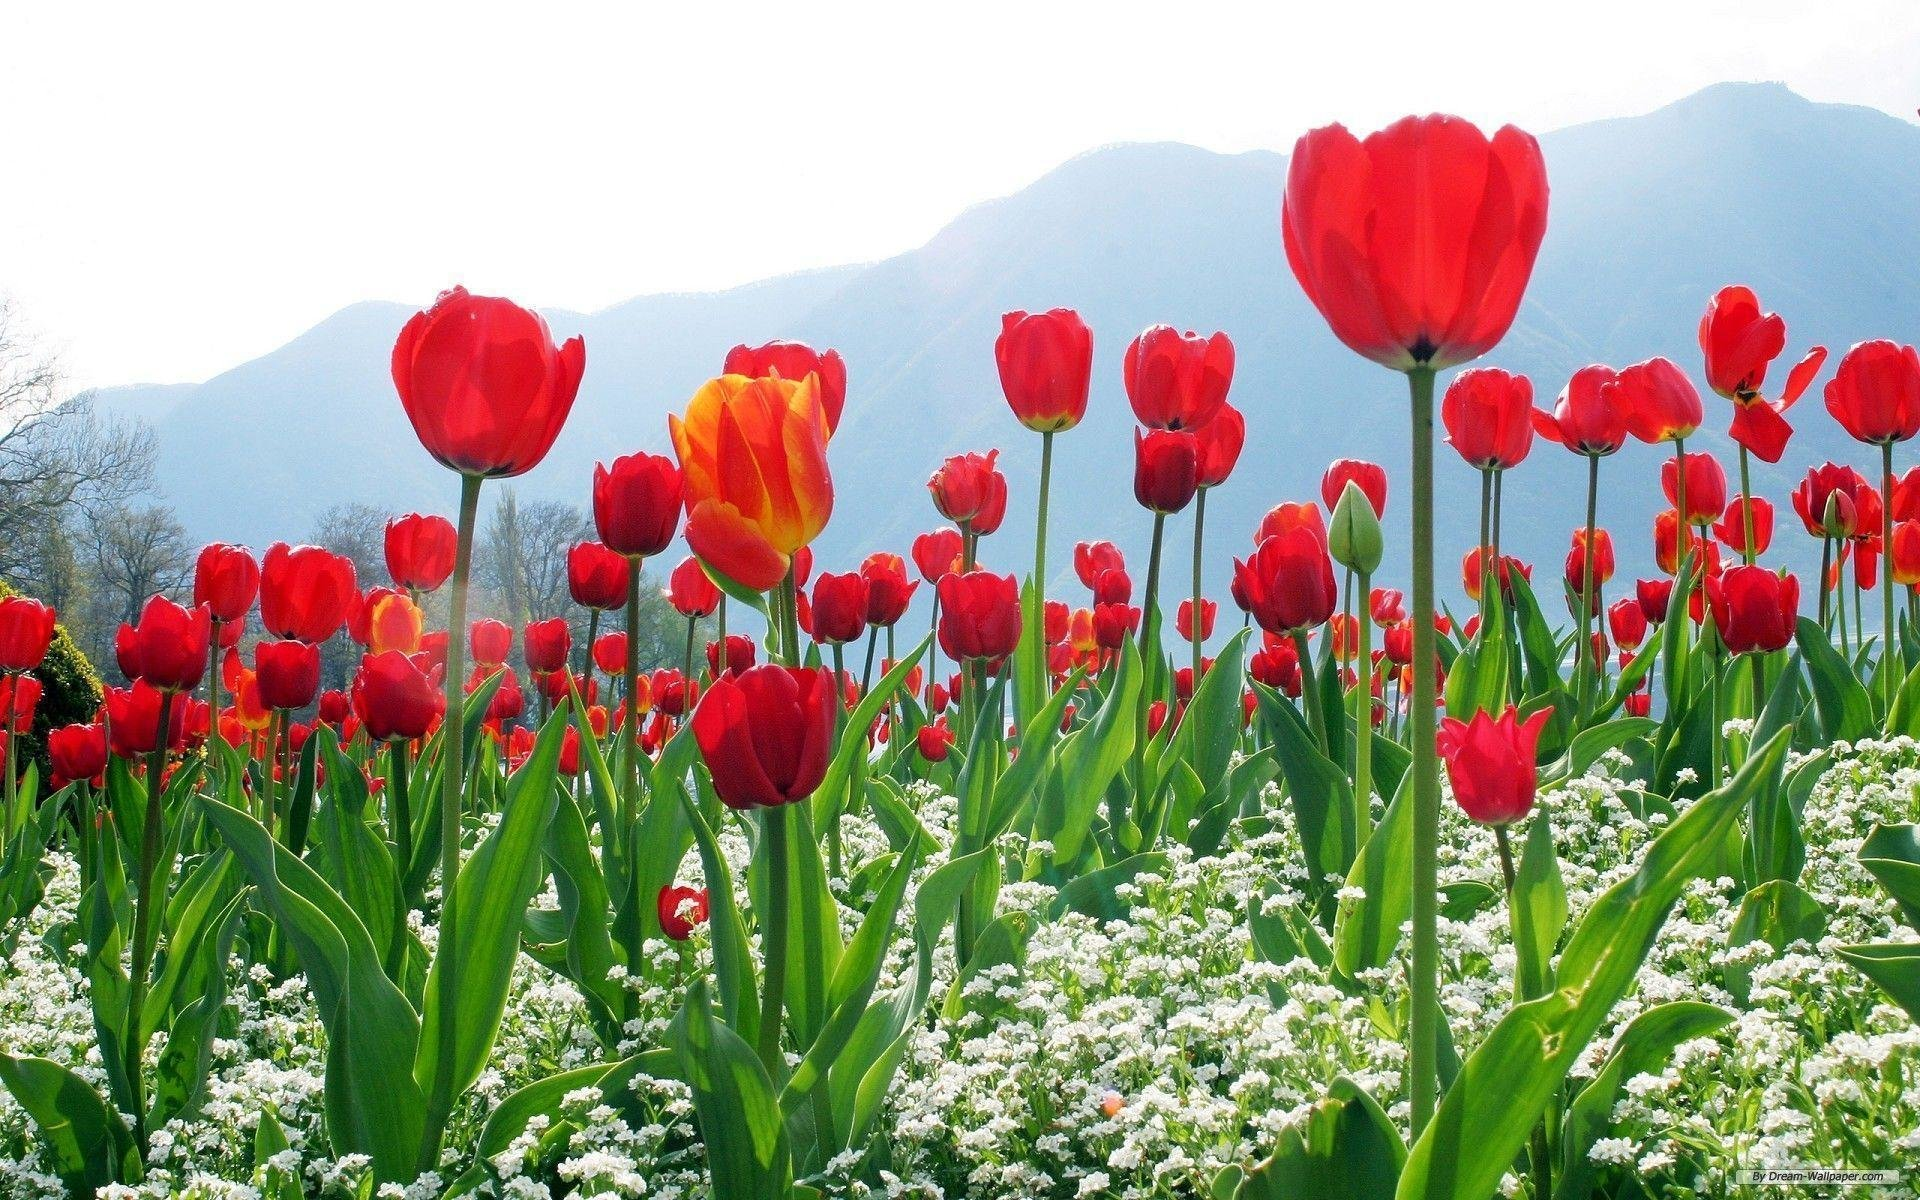 Kashmir Tulip Festival – 03 Nights & 04 Days